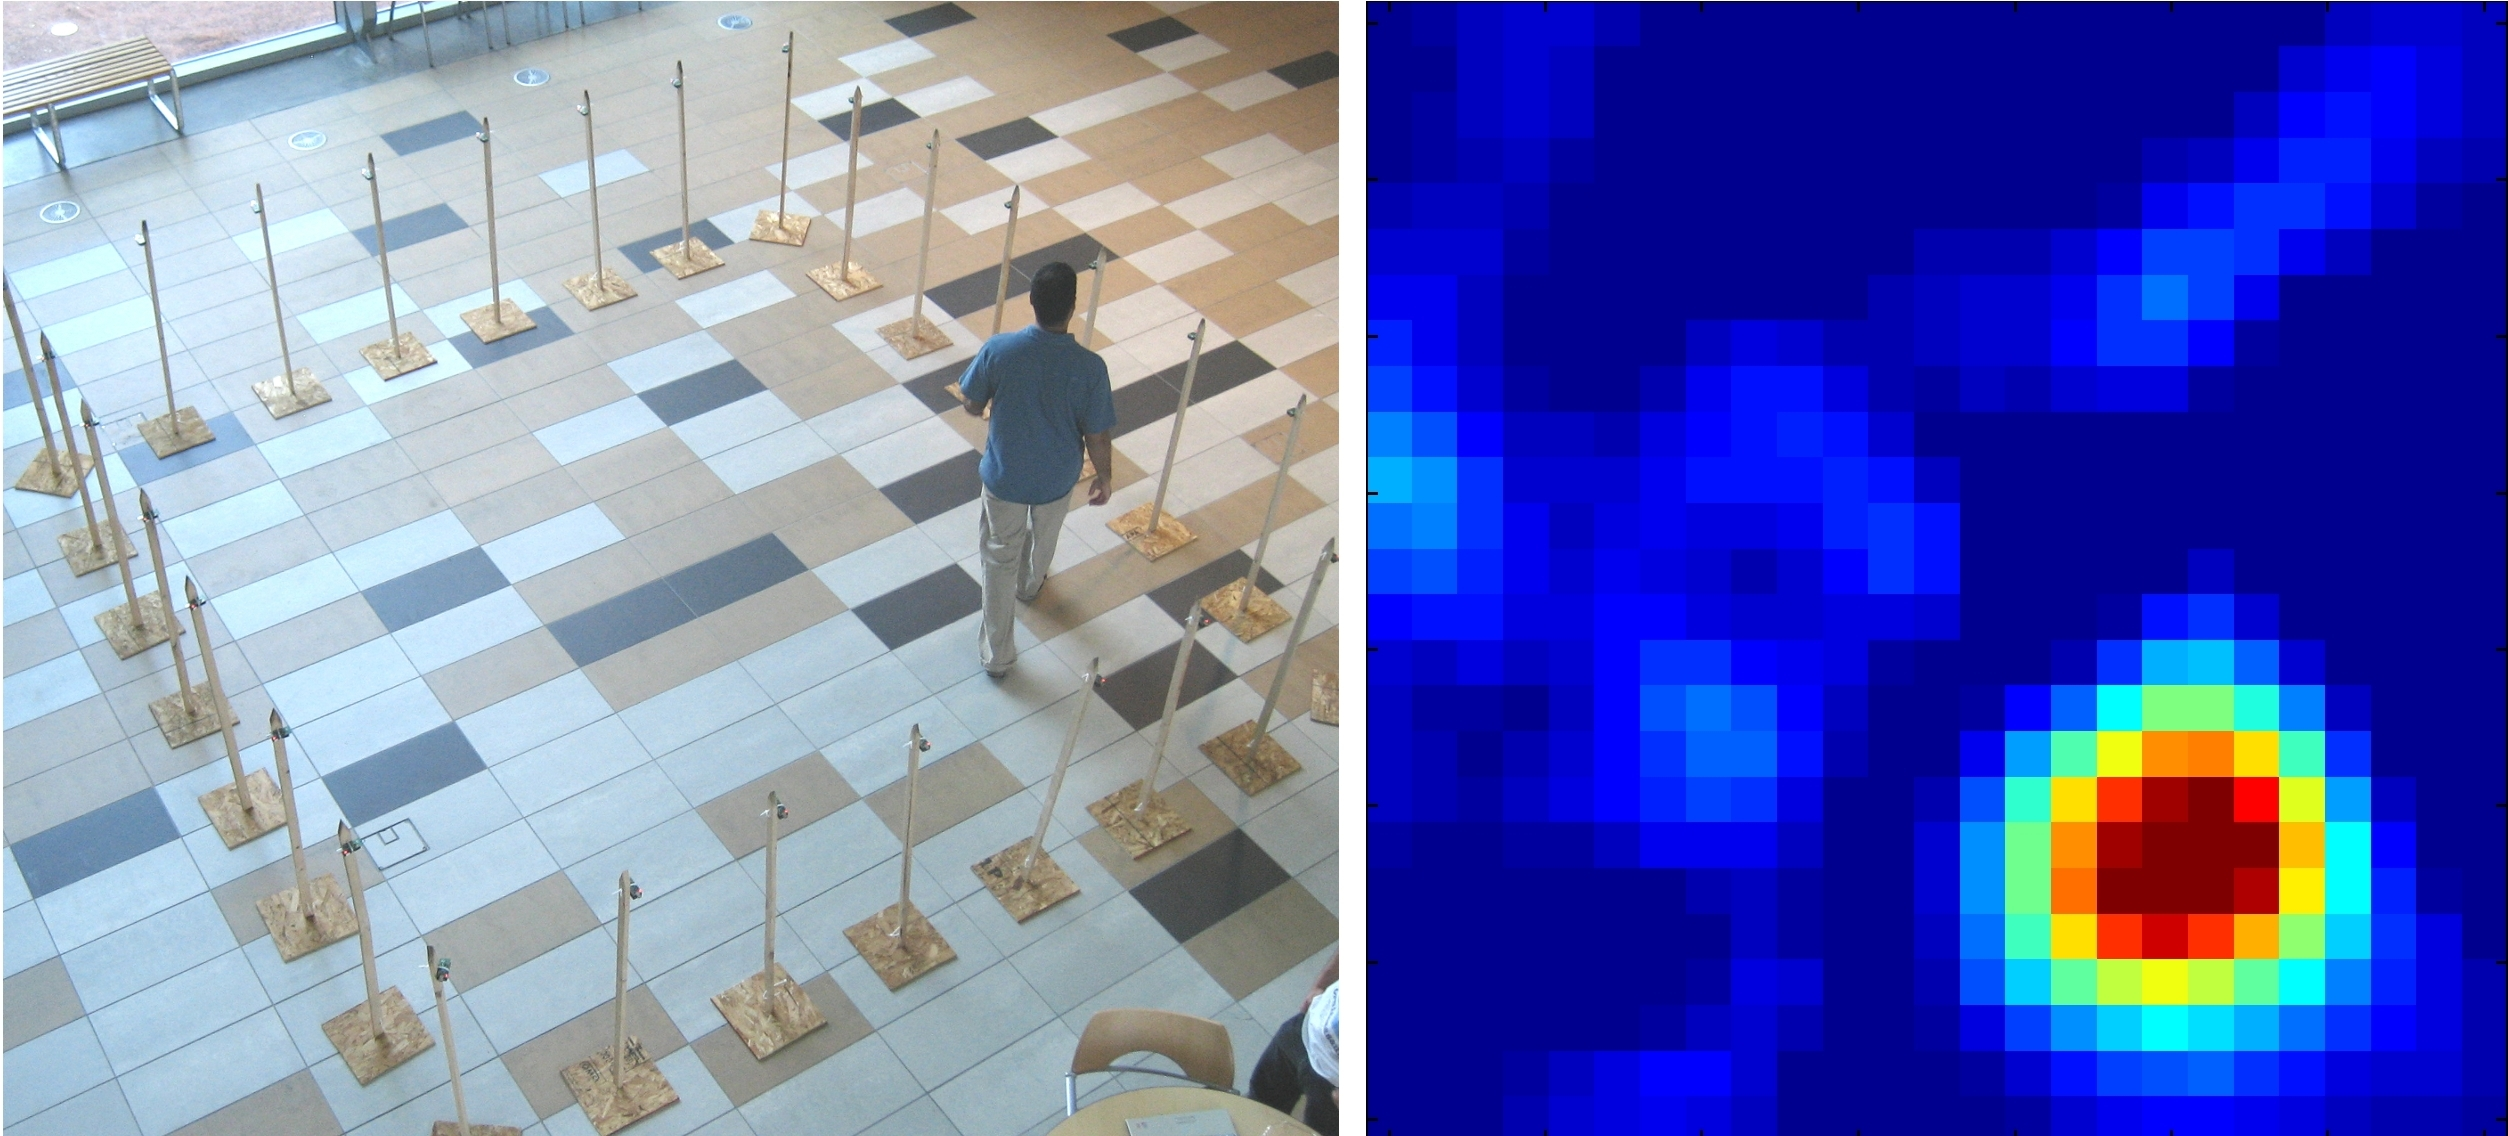 """On the left, a person walks around inside a square of 28 radio transceivers (mounted on plastic pipes) in the Warnock Engineering Building's atrium at the University of Utah. The person creates """"shadows"""" in the radio waves, resulting in the image displayed on right, in which the person appears as a reddish-orange-yellow blob. University of Utah engineers also showed this method can """"see"""" through walls to make blurry images of people moving behind the walls. They hope the technique will help police, firefighters and other emergency responders apprehend burglars and rescue hostages, fire victims and others."""